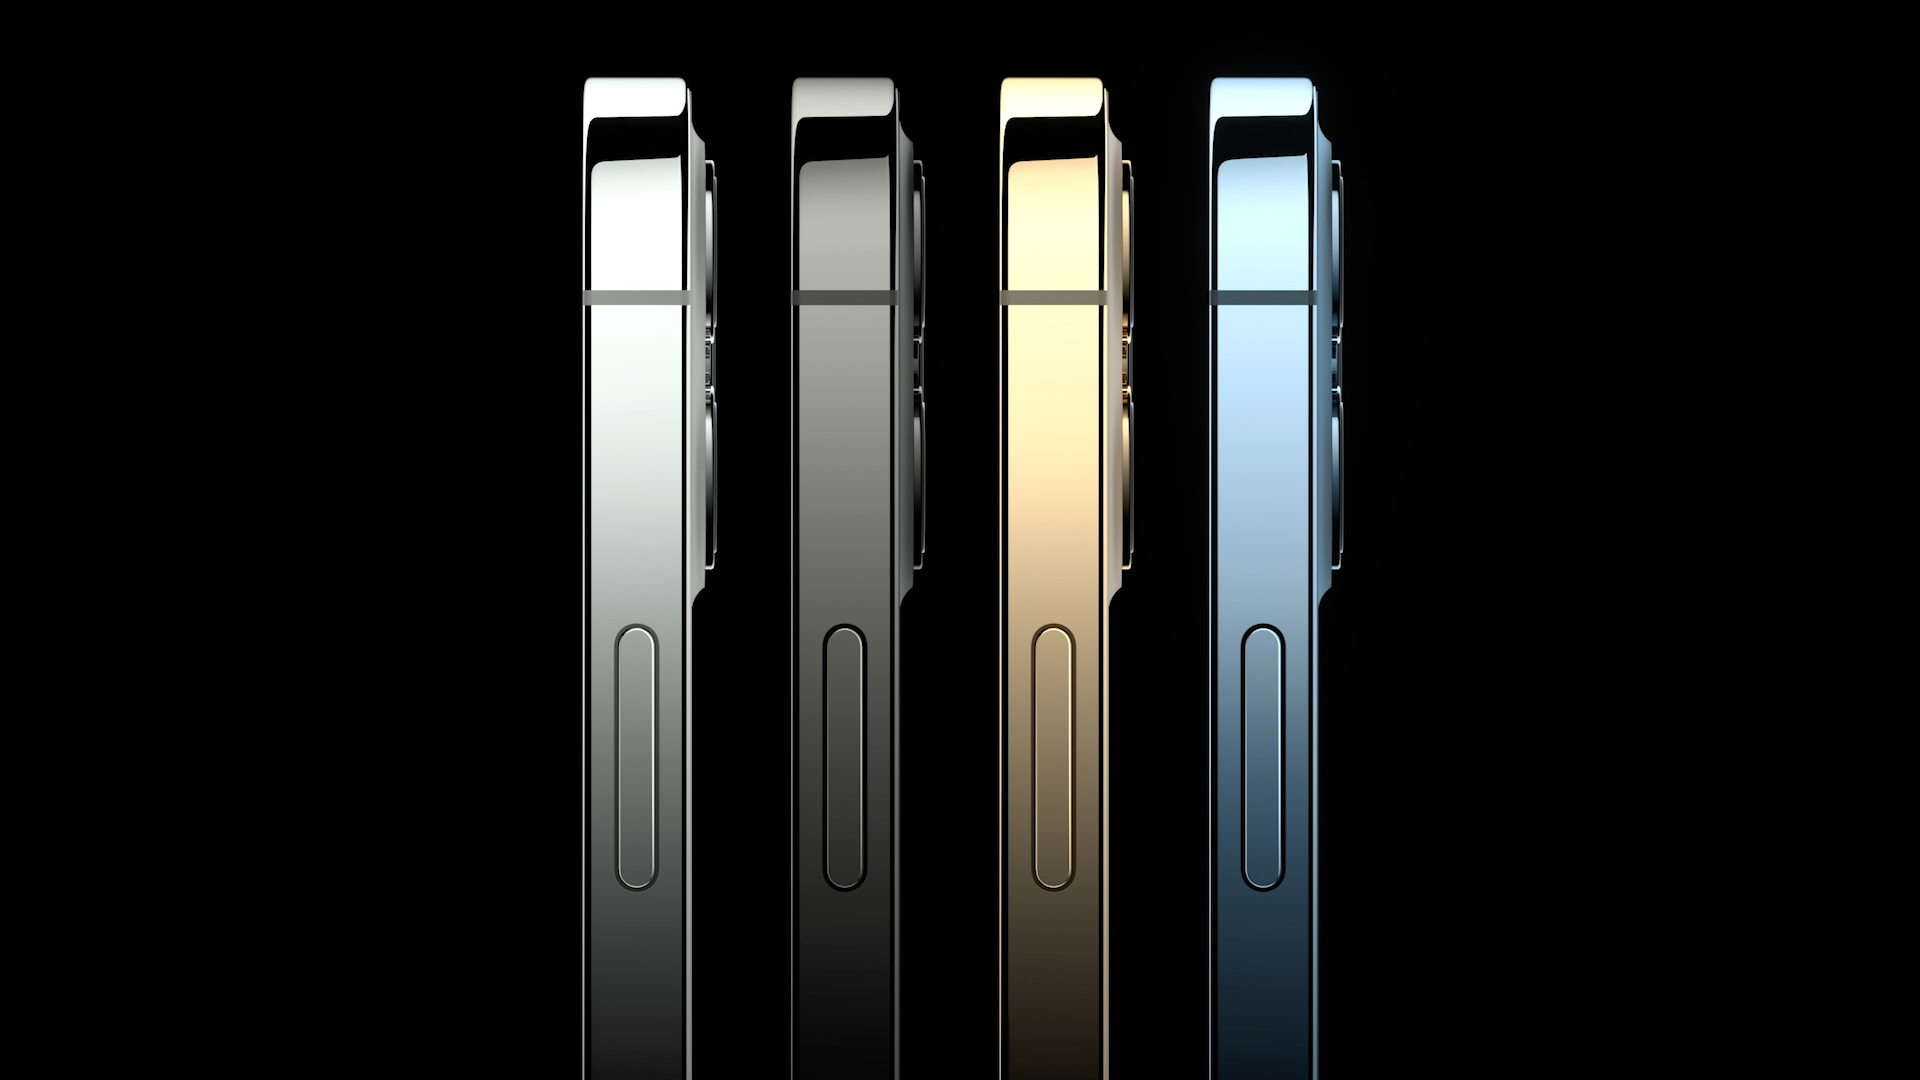 74-apple-iphone-12-pro-5g-2020.png